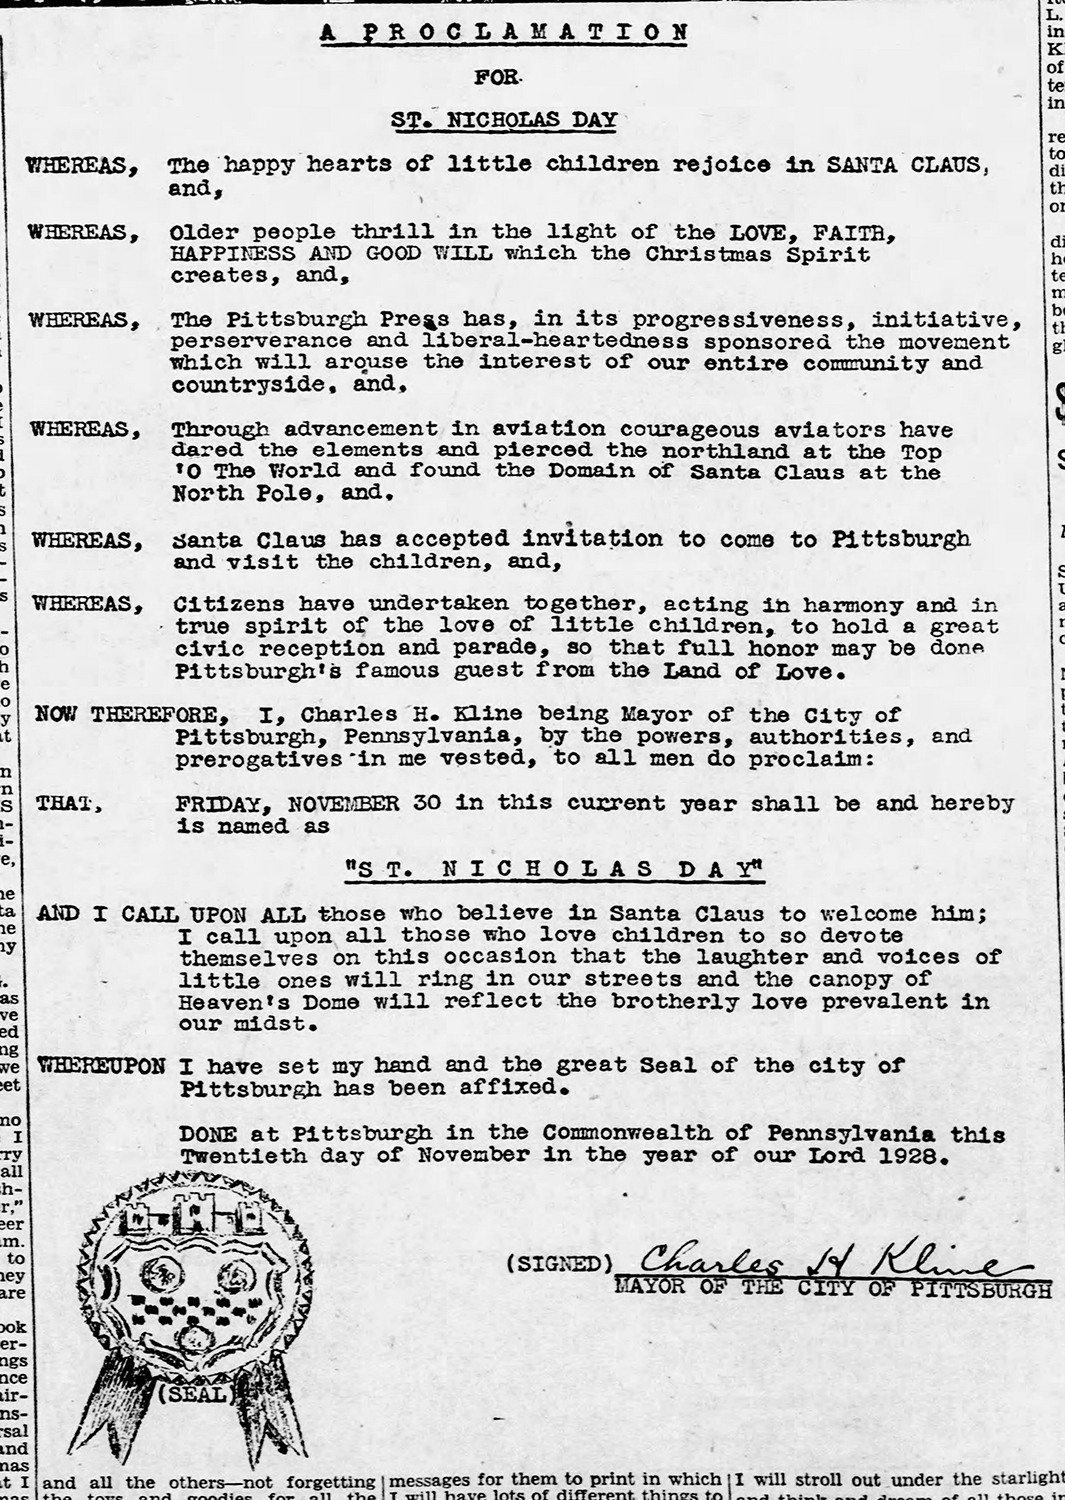 """Pittsburgh Mayor Charles H. Kline announced the arrival of """"St. Nicholas Day"""" on November 30, 1928 with a proclamation published in The Pittsburgh Press on November 18, 1928."""